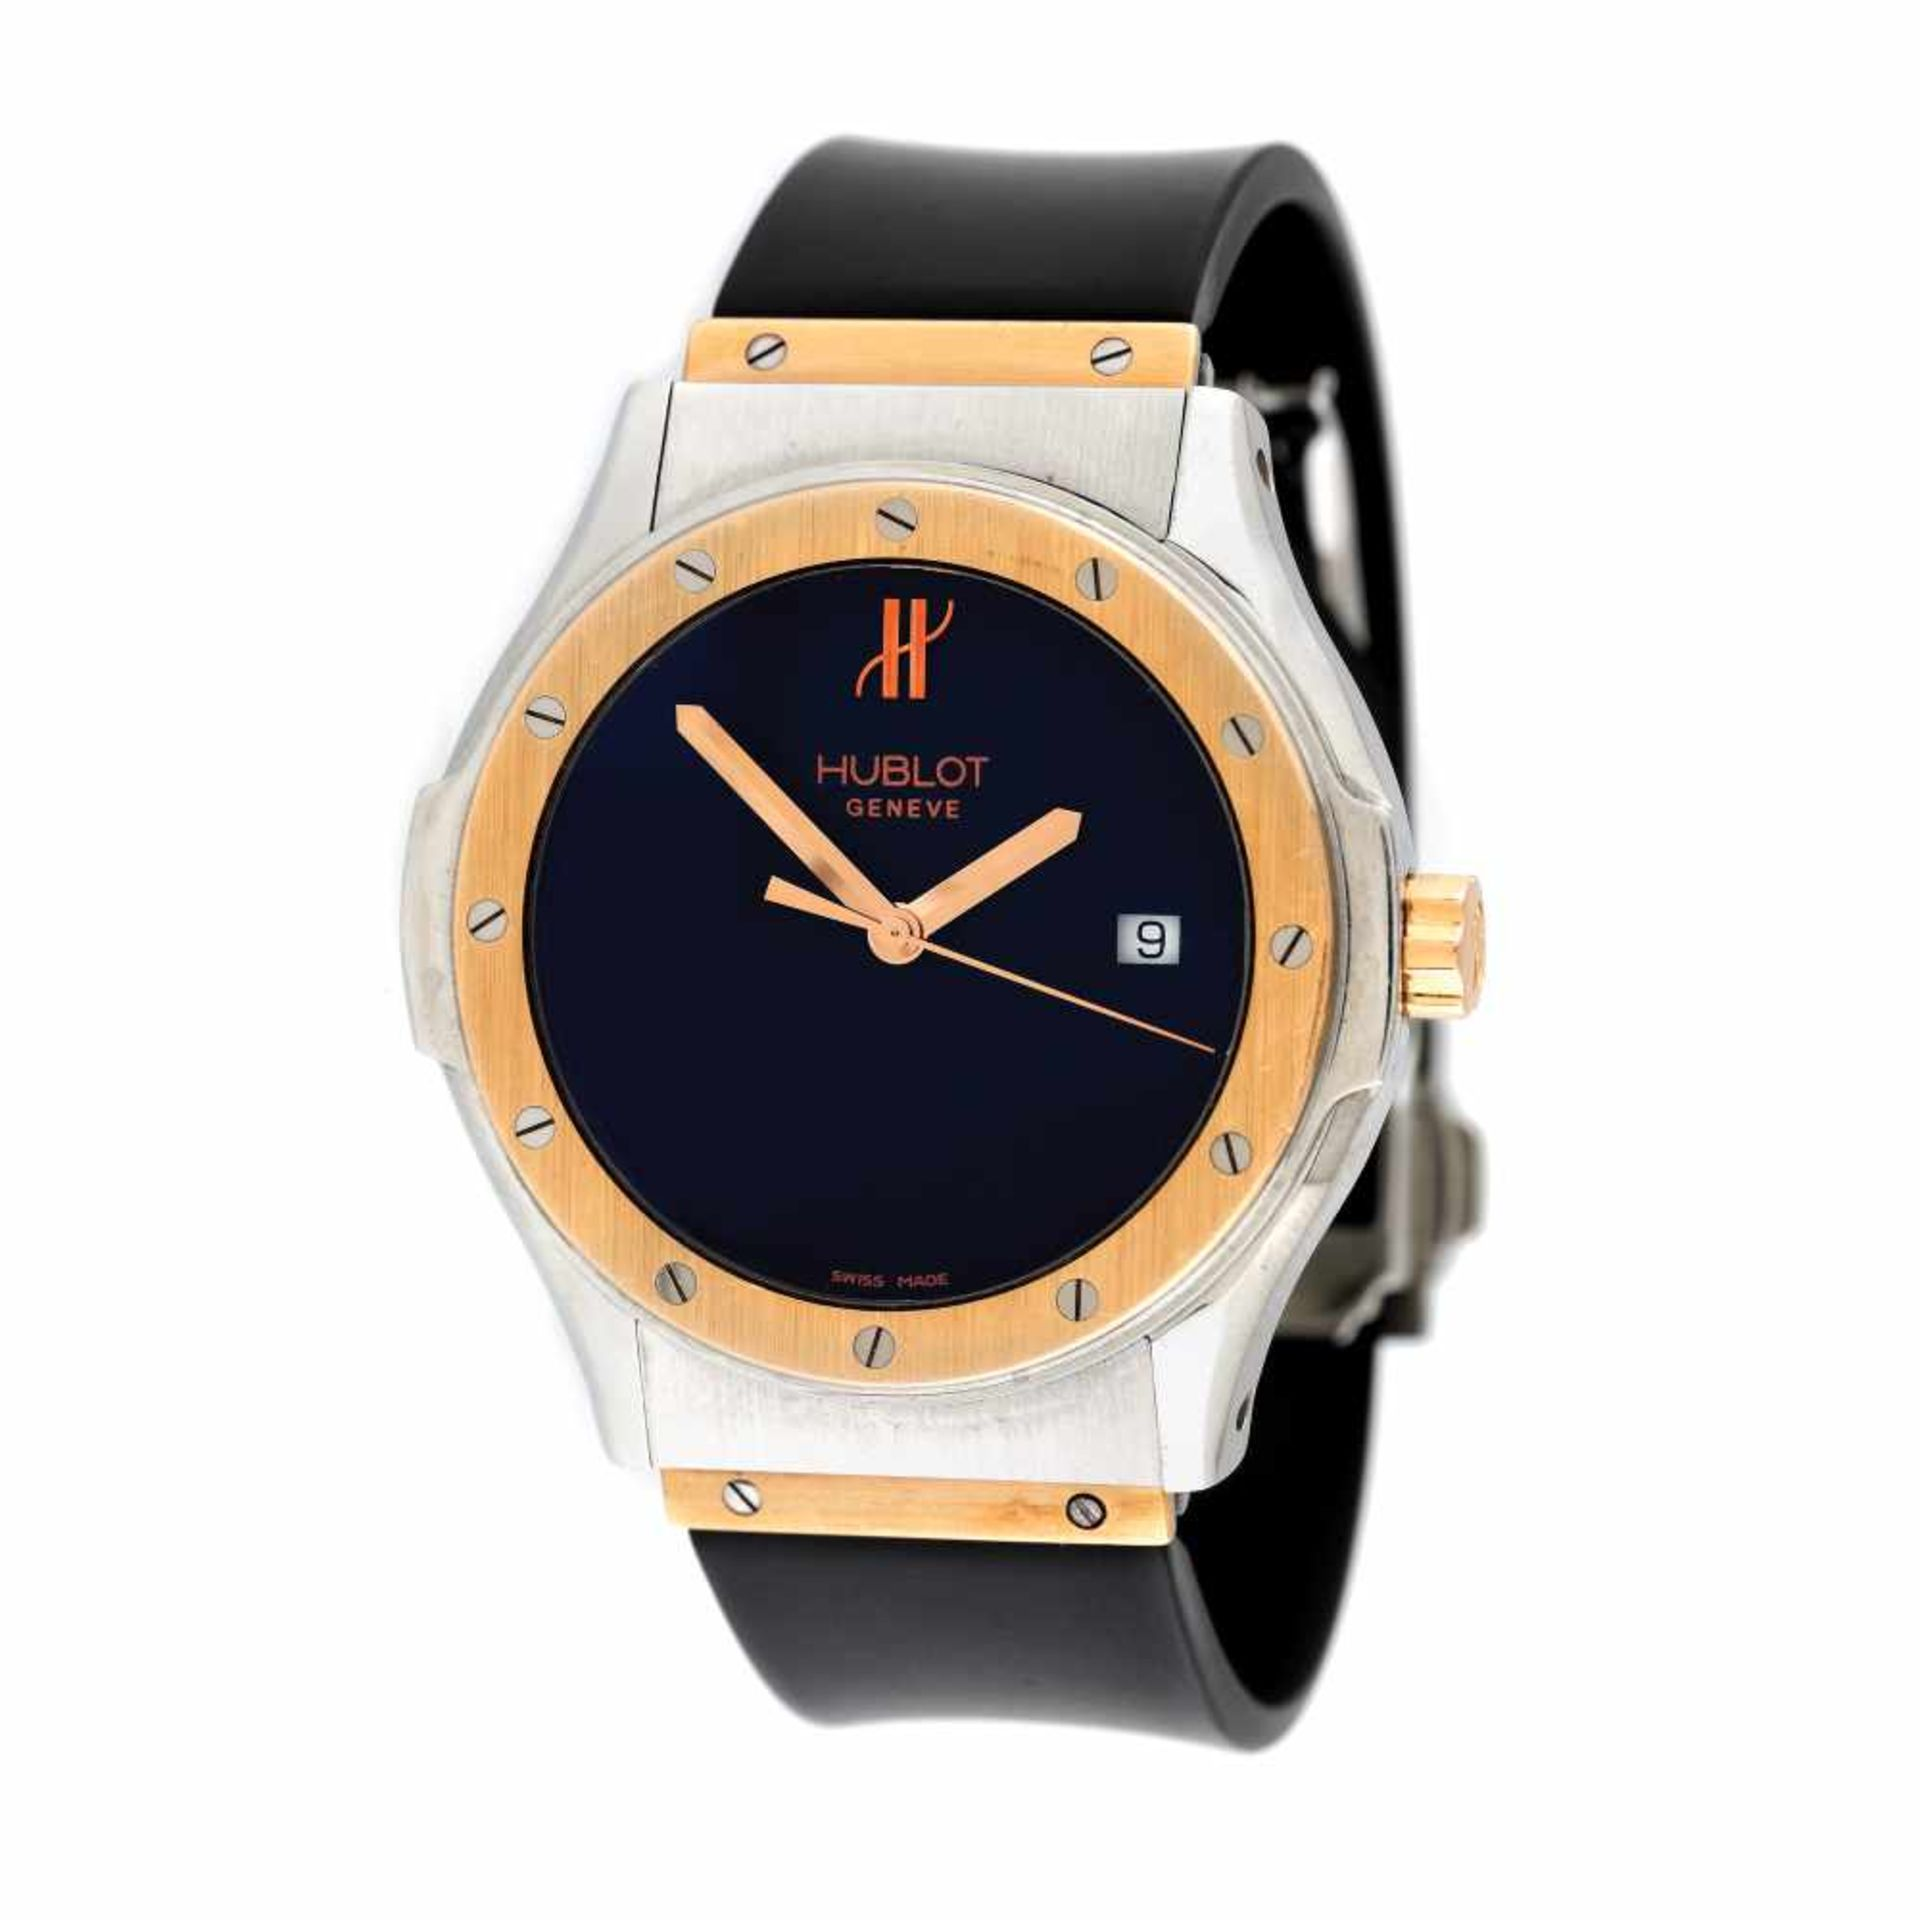 Hublot Classic Fusion wristwatch, steel and rose gold, unisex, provenance documents